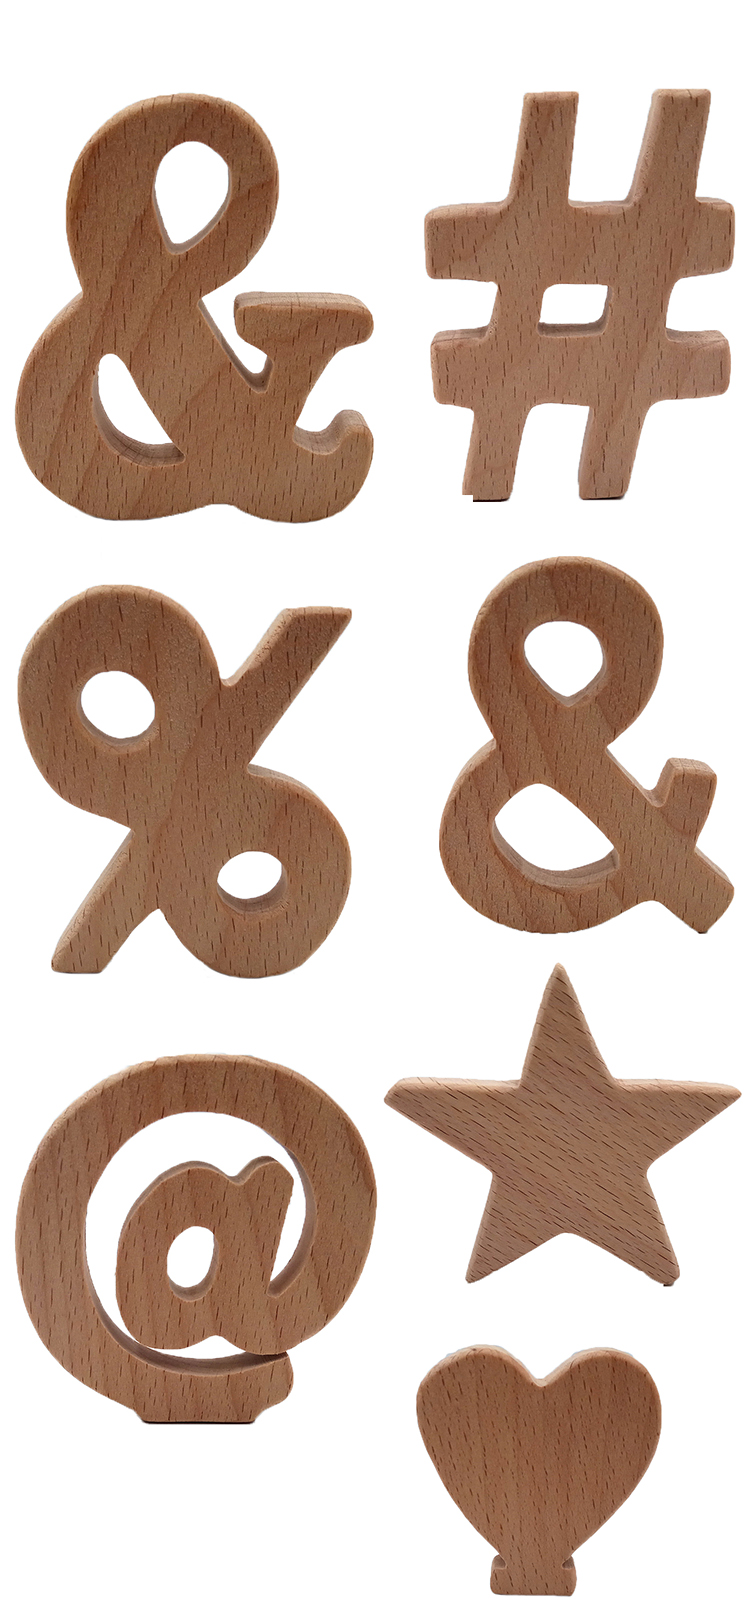 7pcs//Lot Wooden Teething Ring Untreated Natural Wood Teether Ring